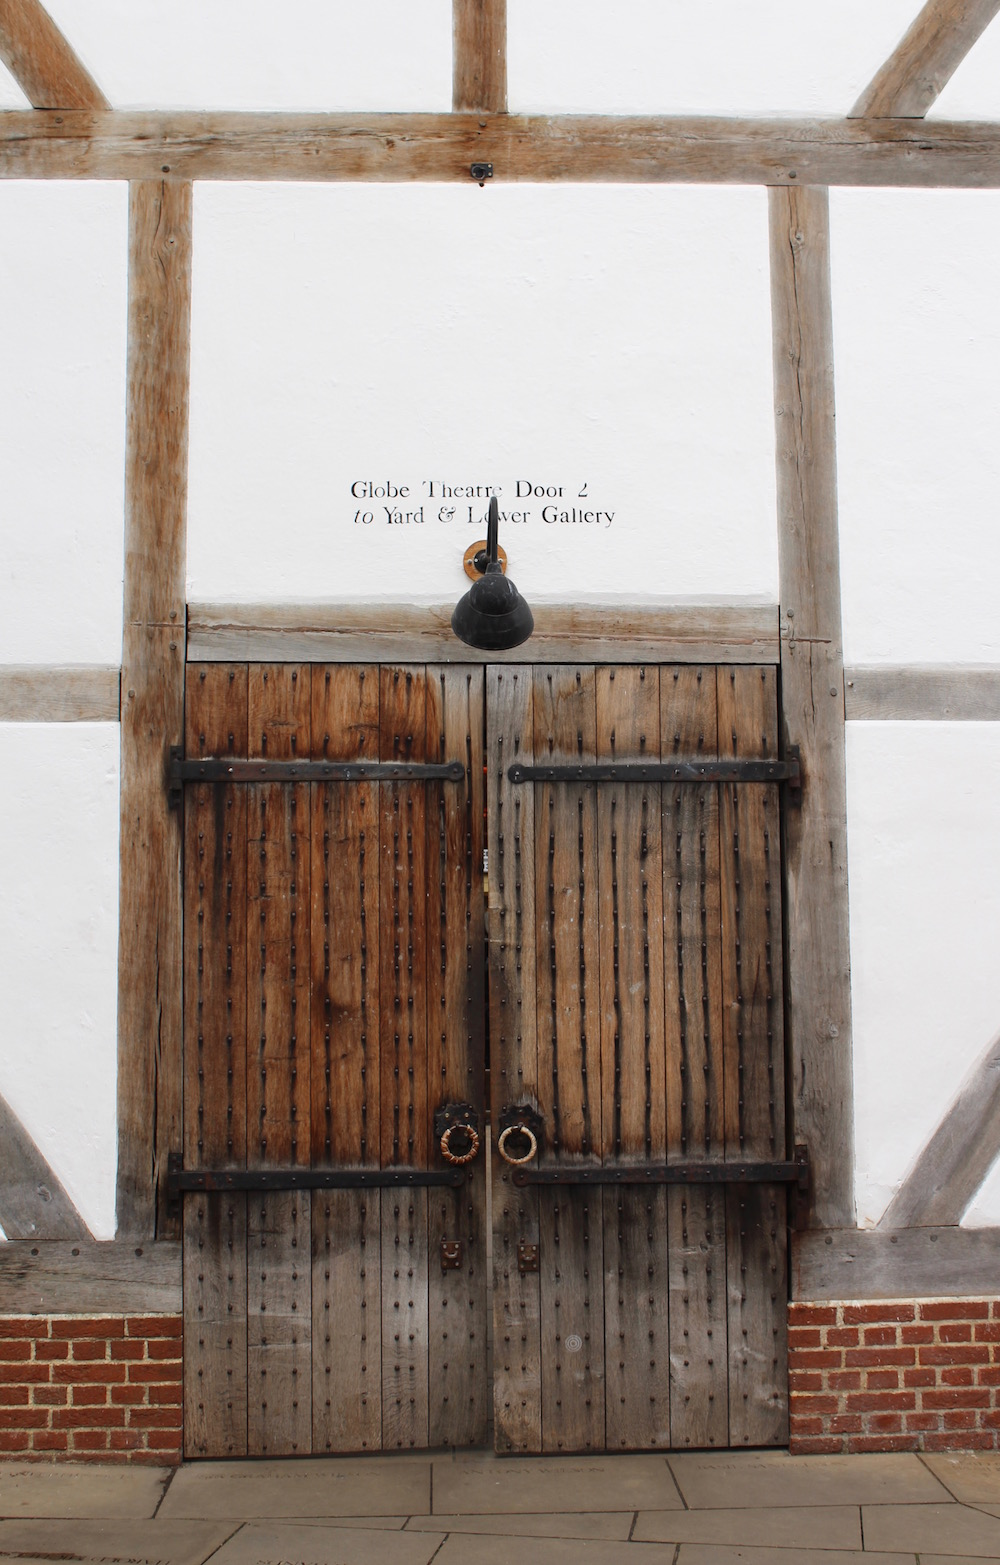 shakespeares-globe-theatre-door